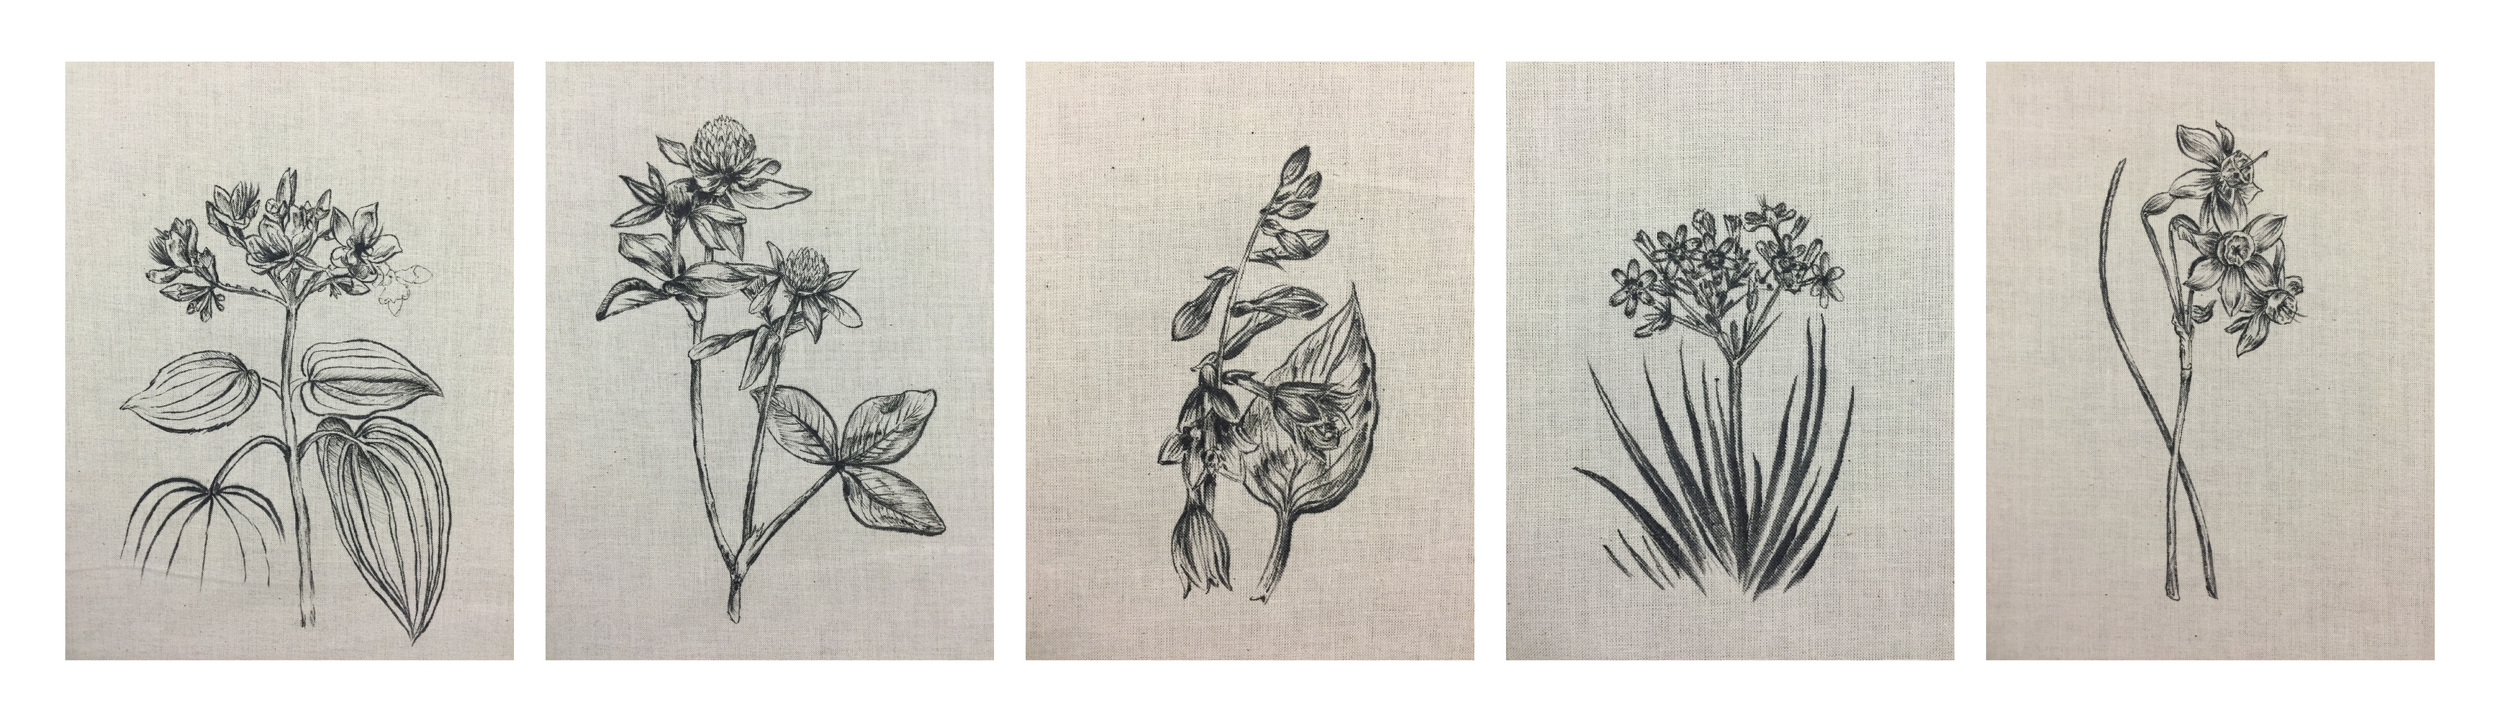 hand-drawn images on cotton, before embroidery